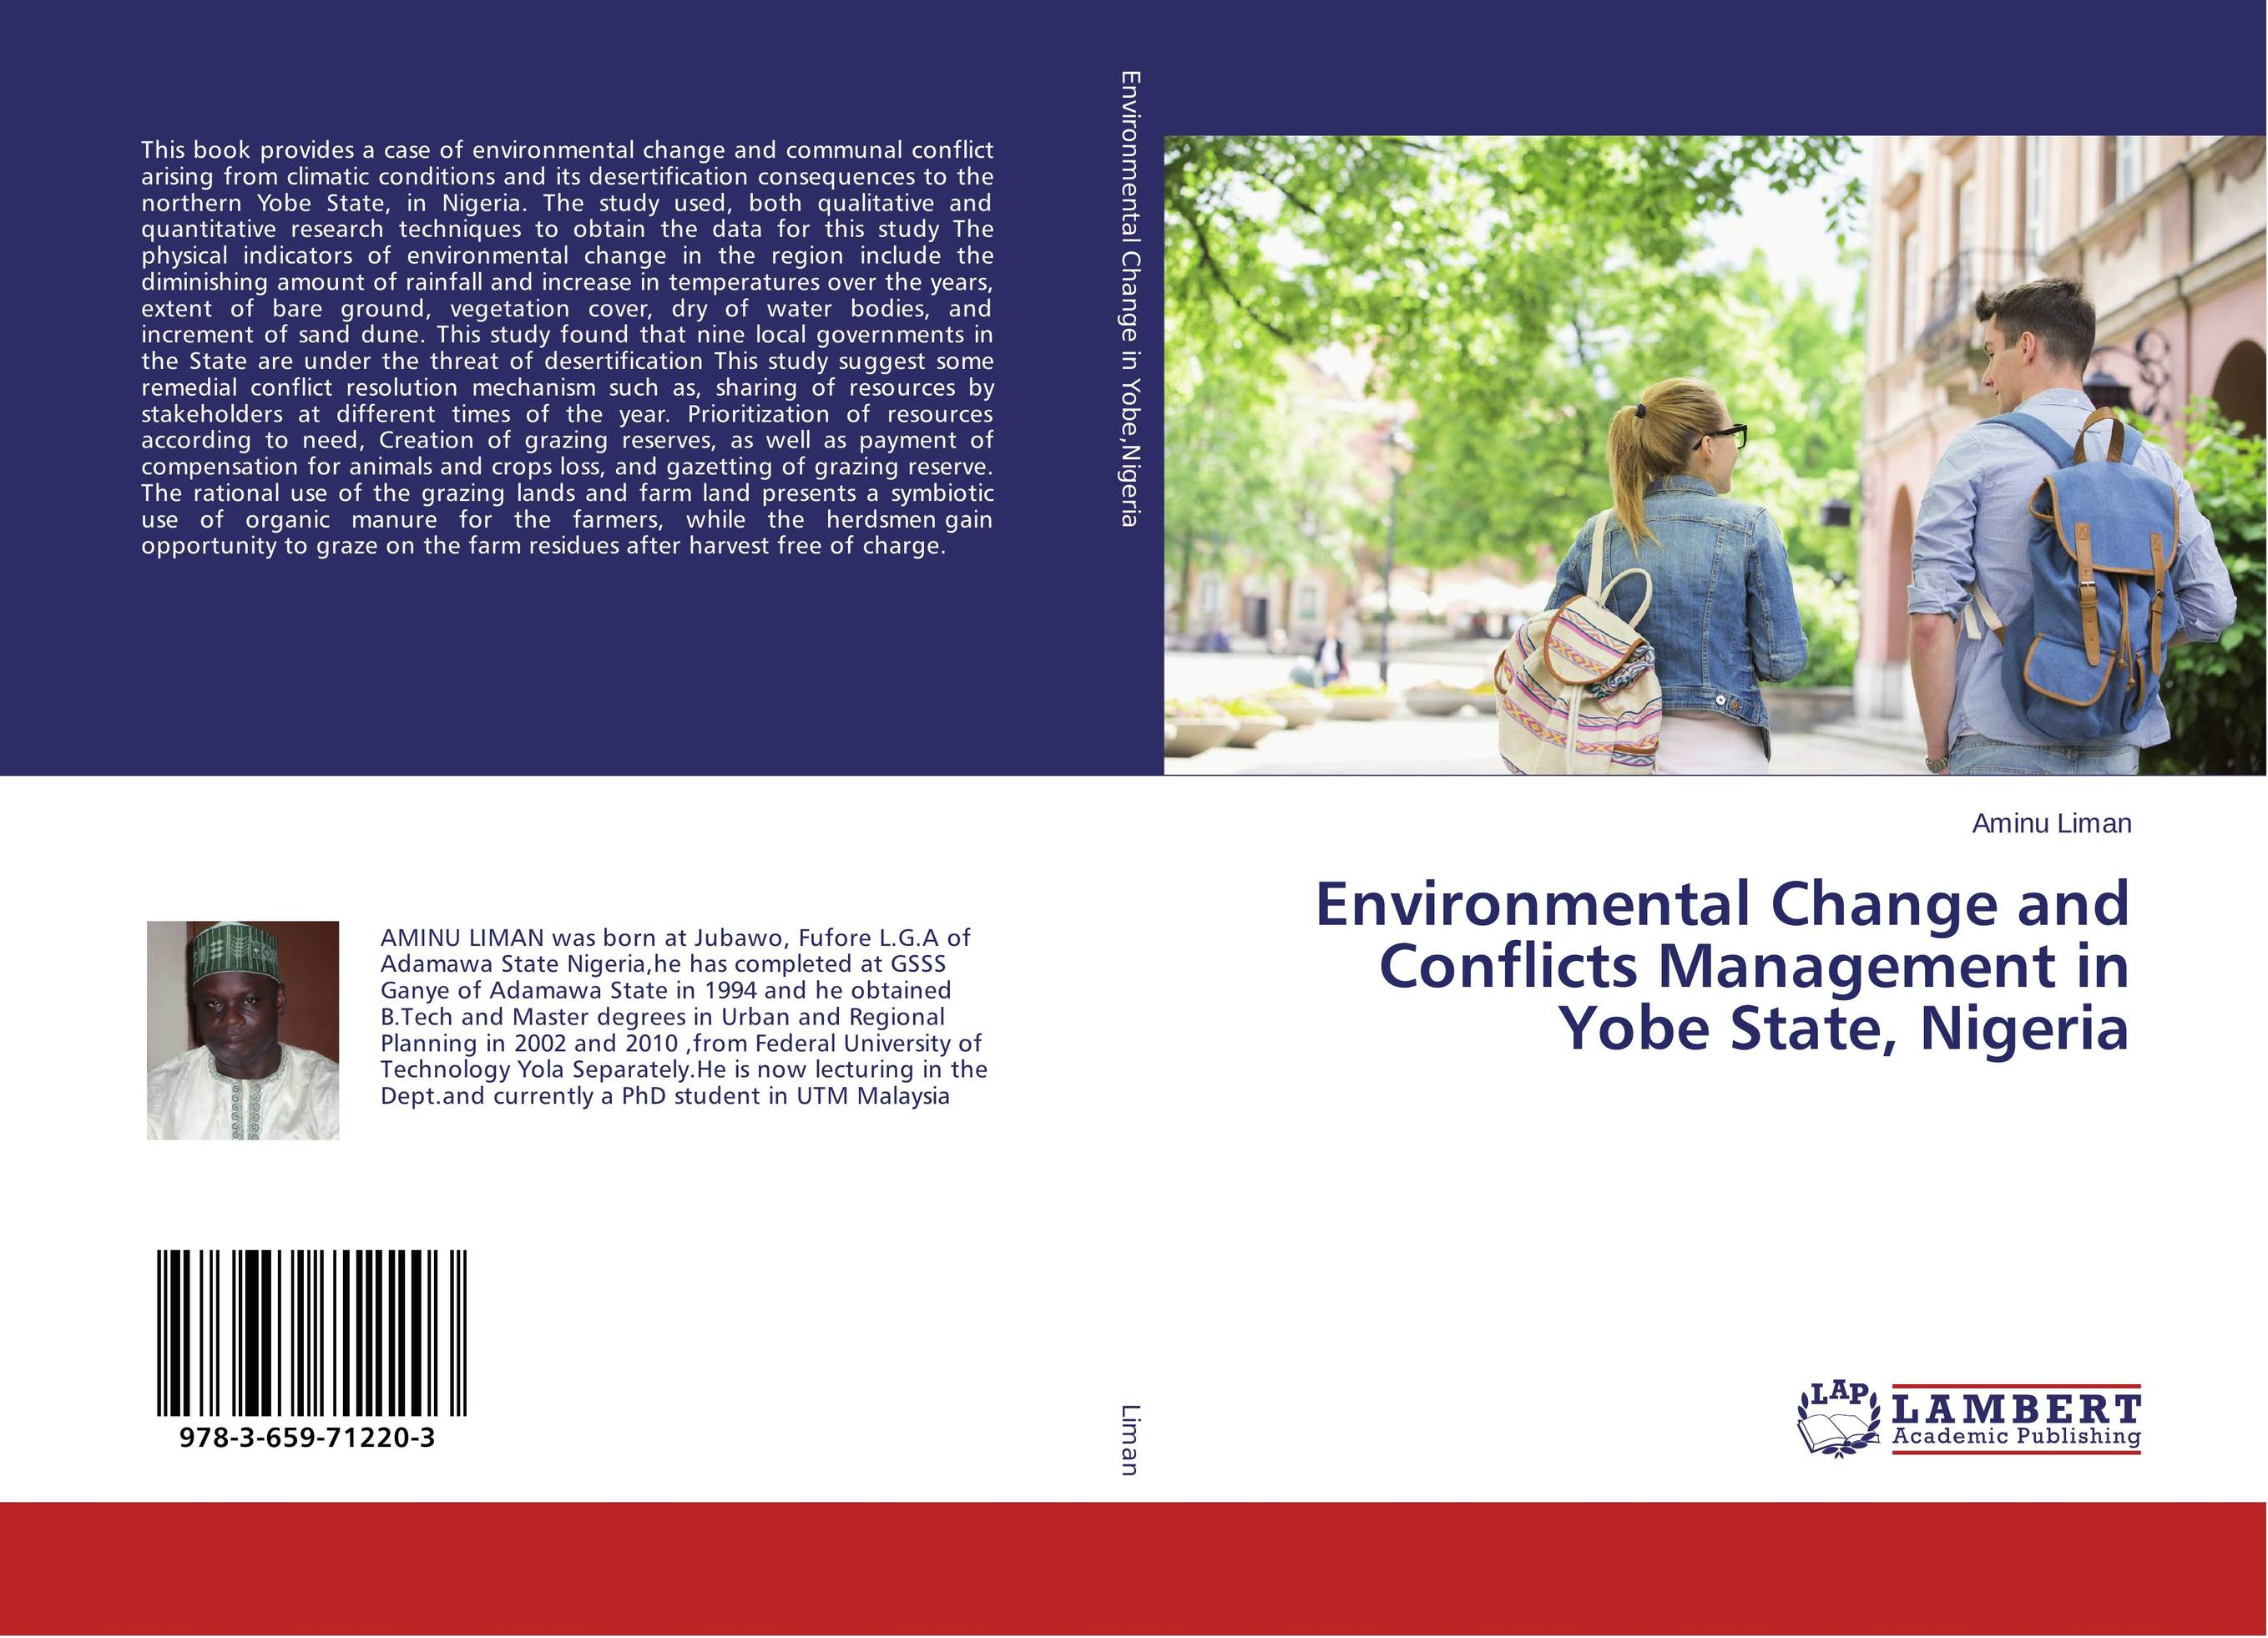 Environmental Change and Conflicts Management in Yobe State, Nigeria conflicts in forest resources usage and management